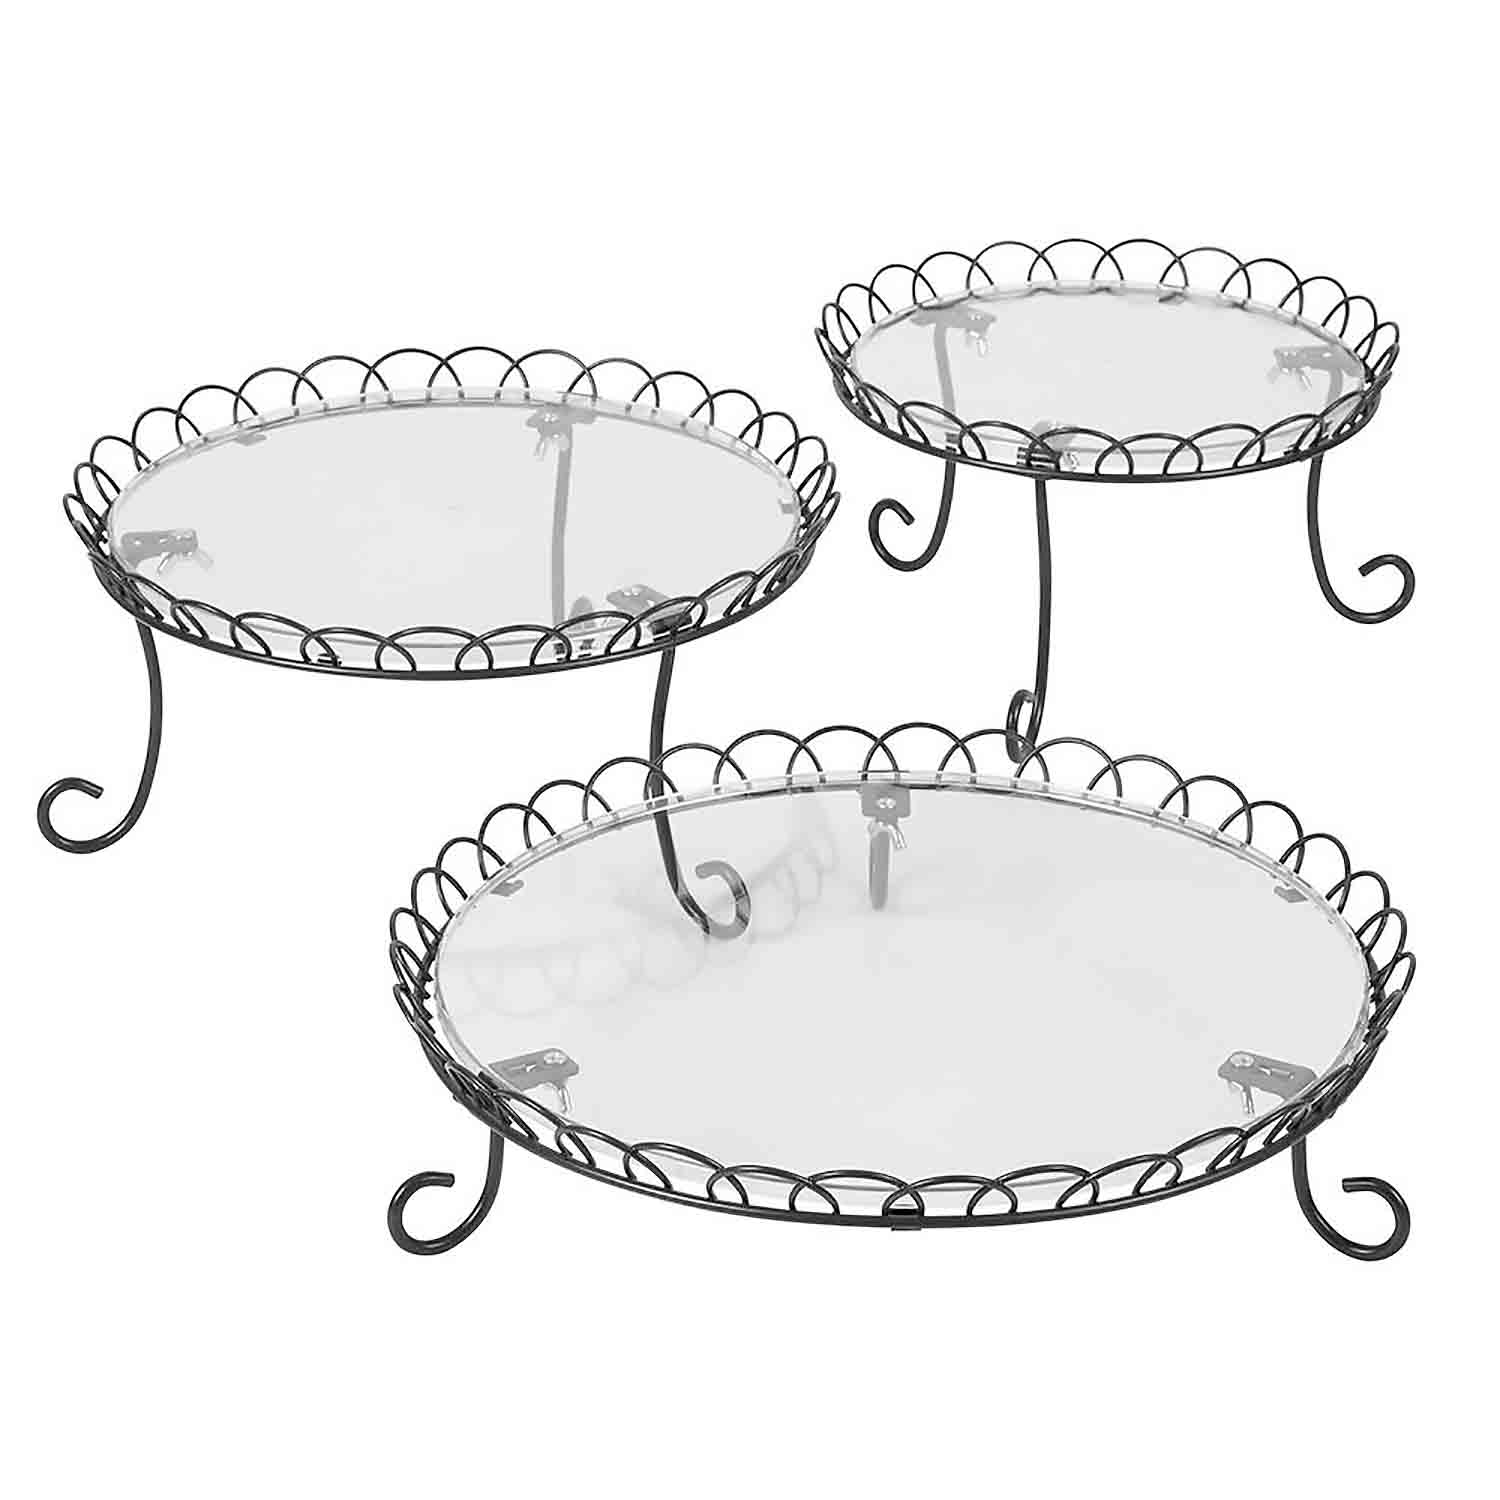 3-Tier Iron Treat Stand Set